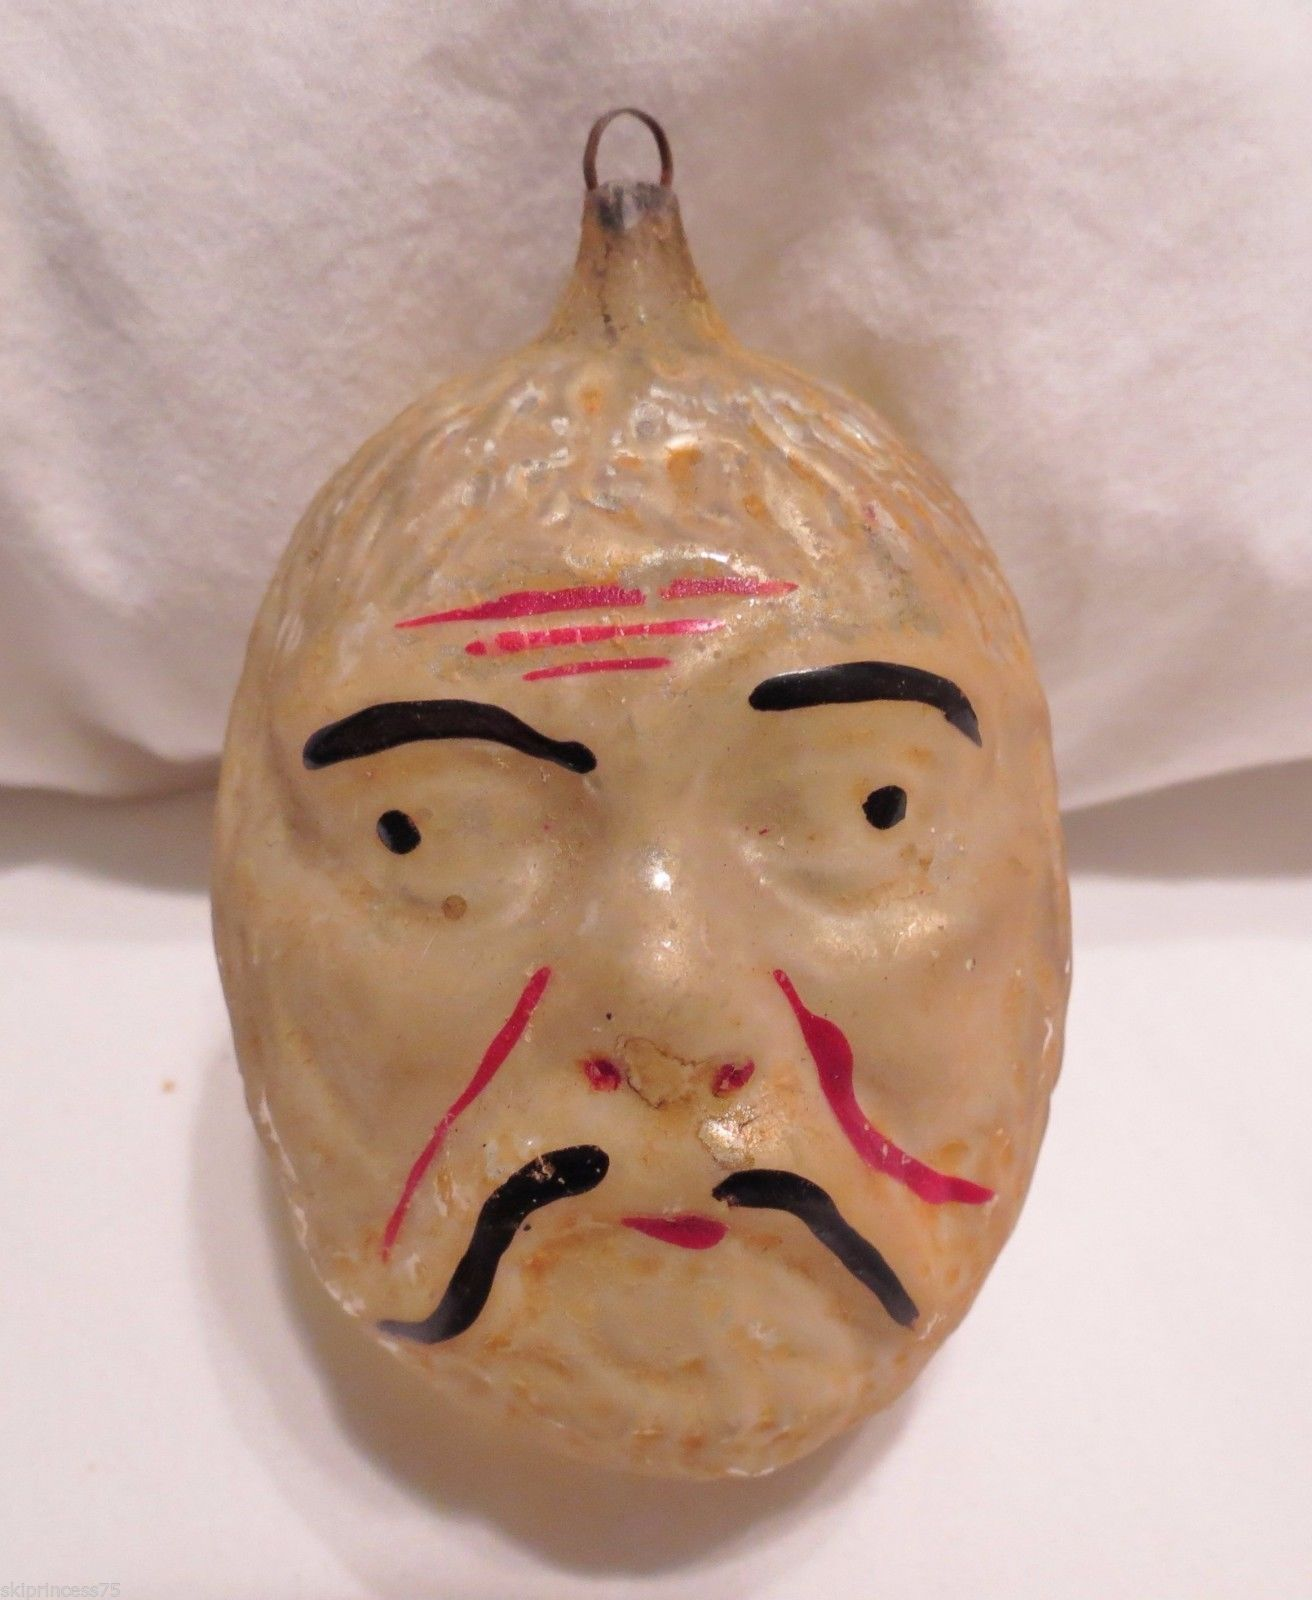 Asian christmas ornaments - Details About Antique Christmas Ornament Blown Glass Character Head Walnut Asian Man Warrior